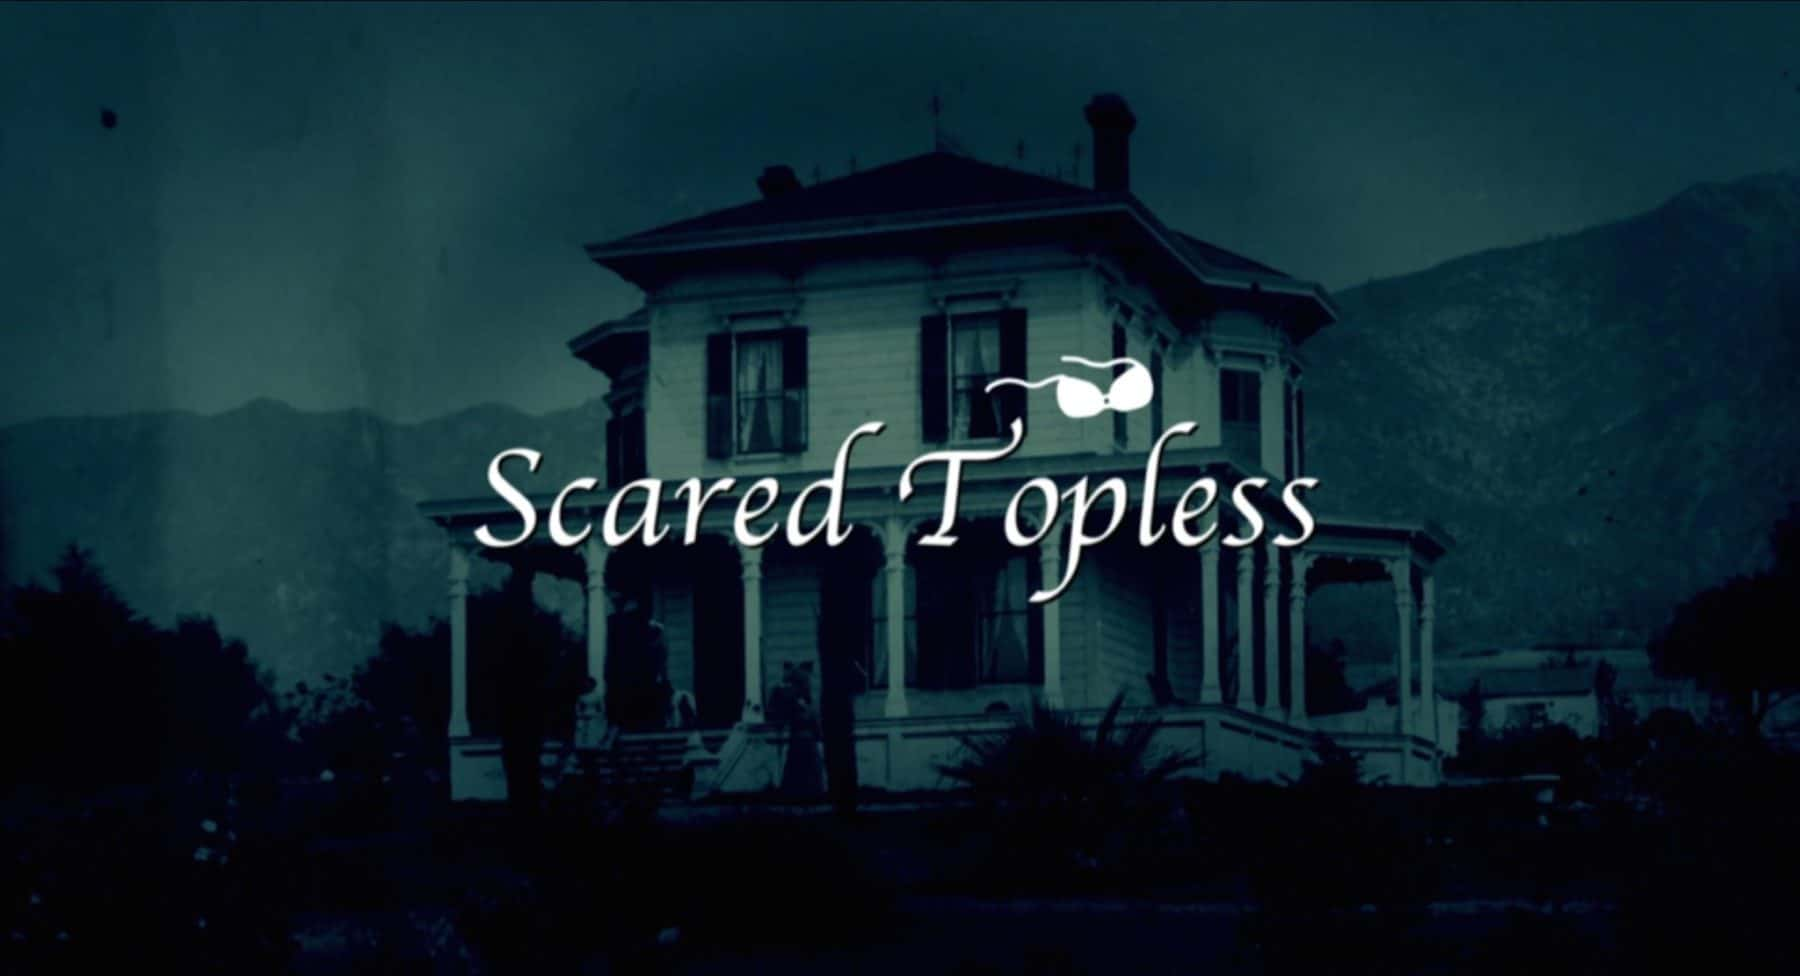 Horror Movie Review: Scared Topless (2015)